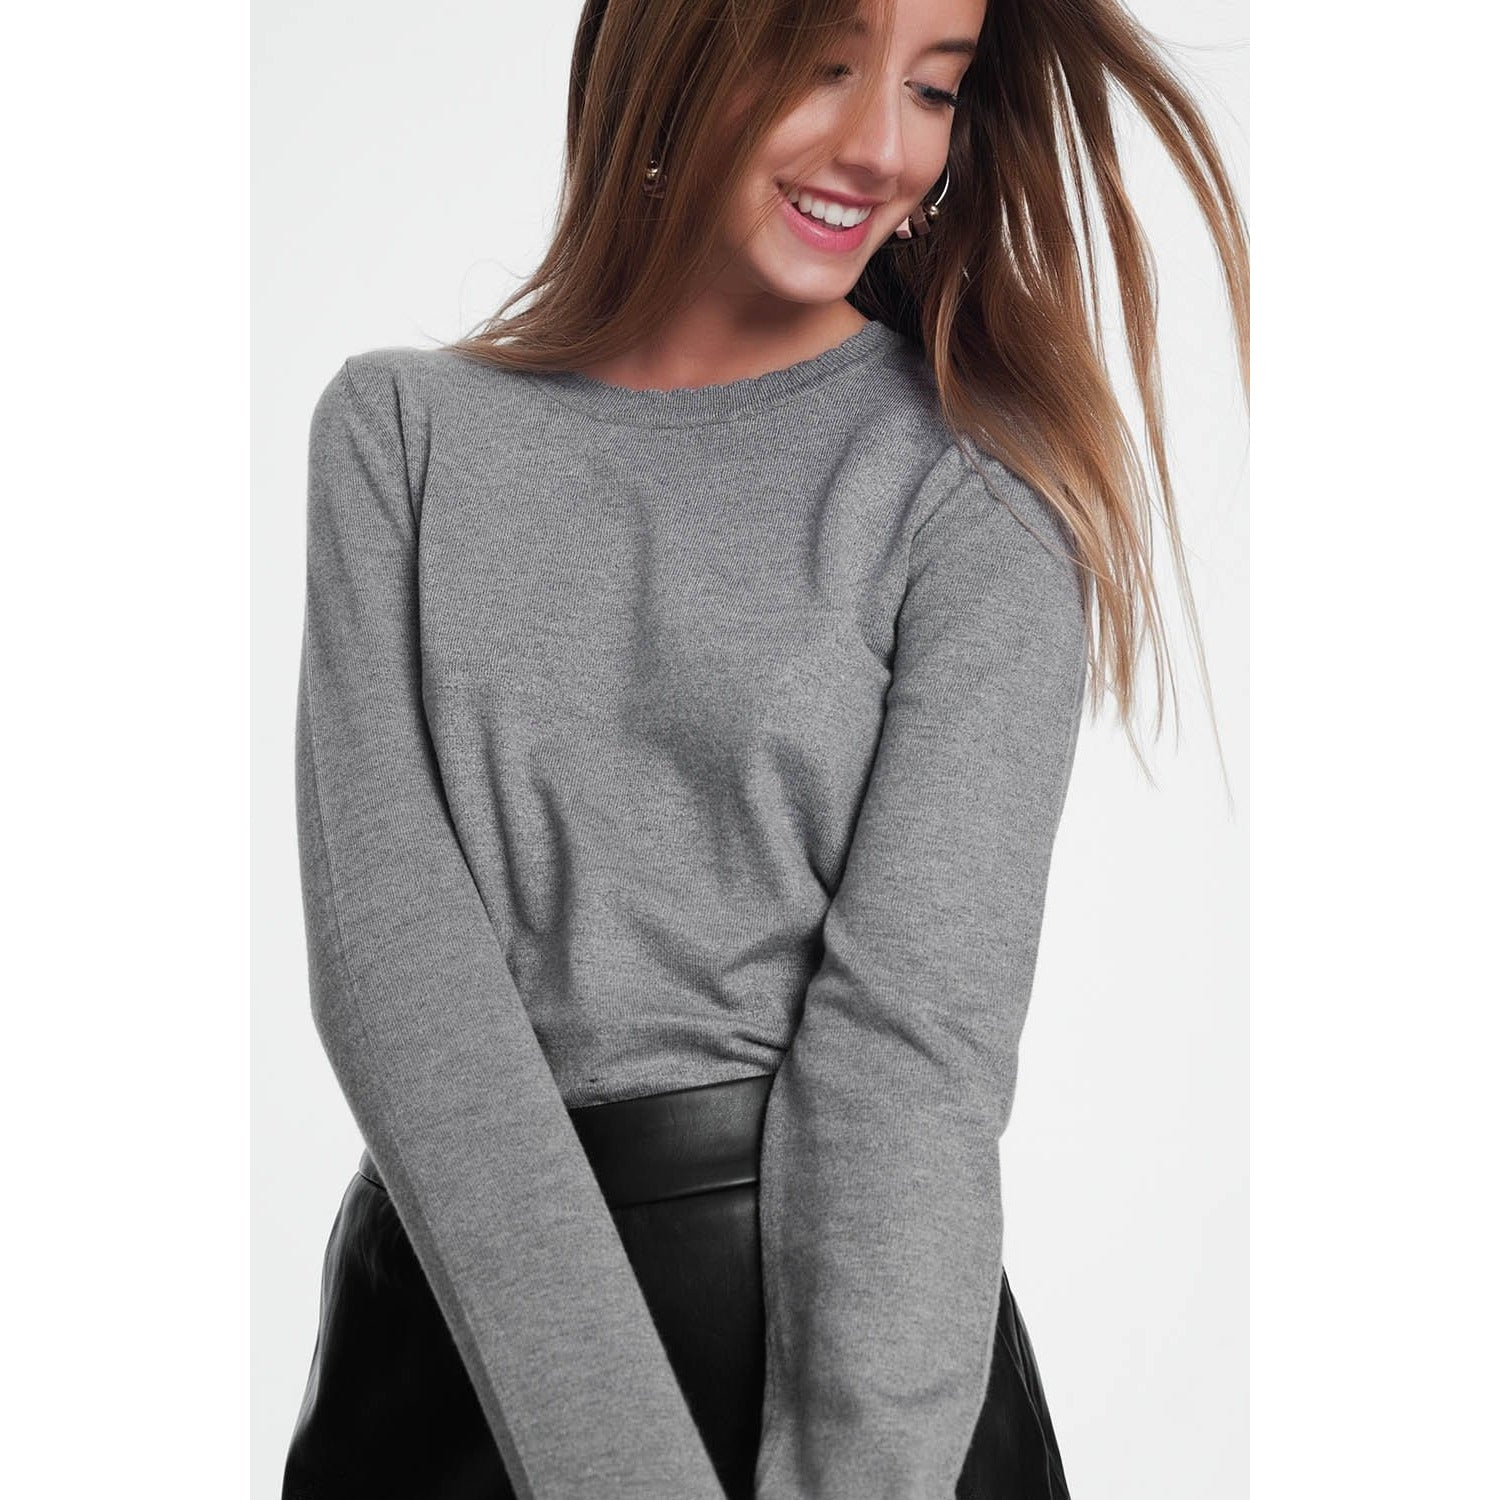 Grey Sweatshirt With Round Neckline - Miraposa